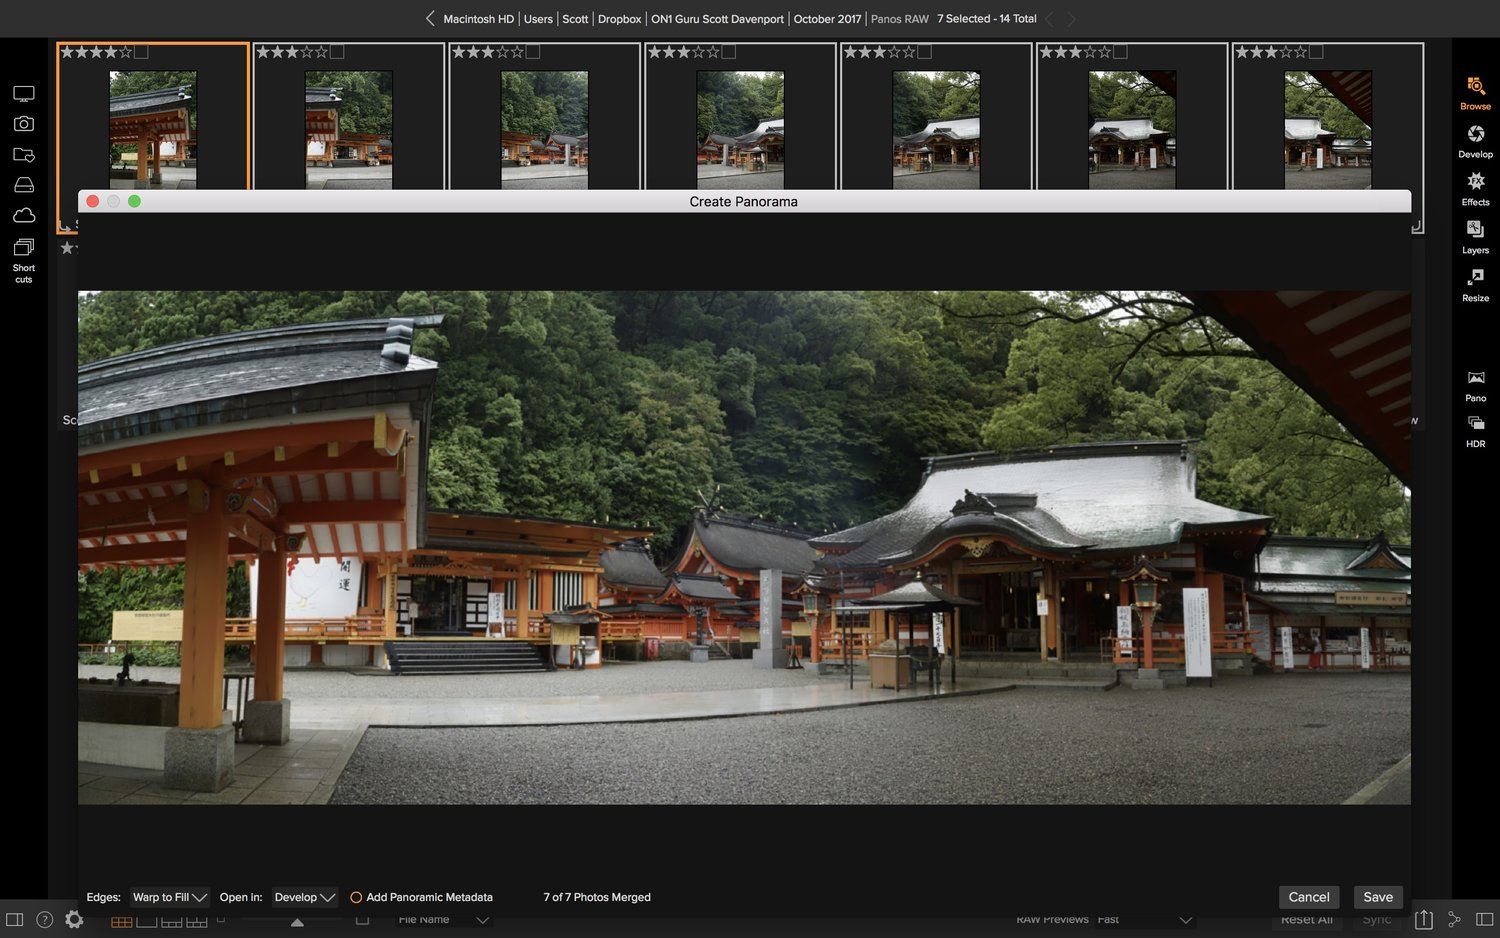 Quickly preview panoramas and add panning metadata